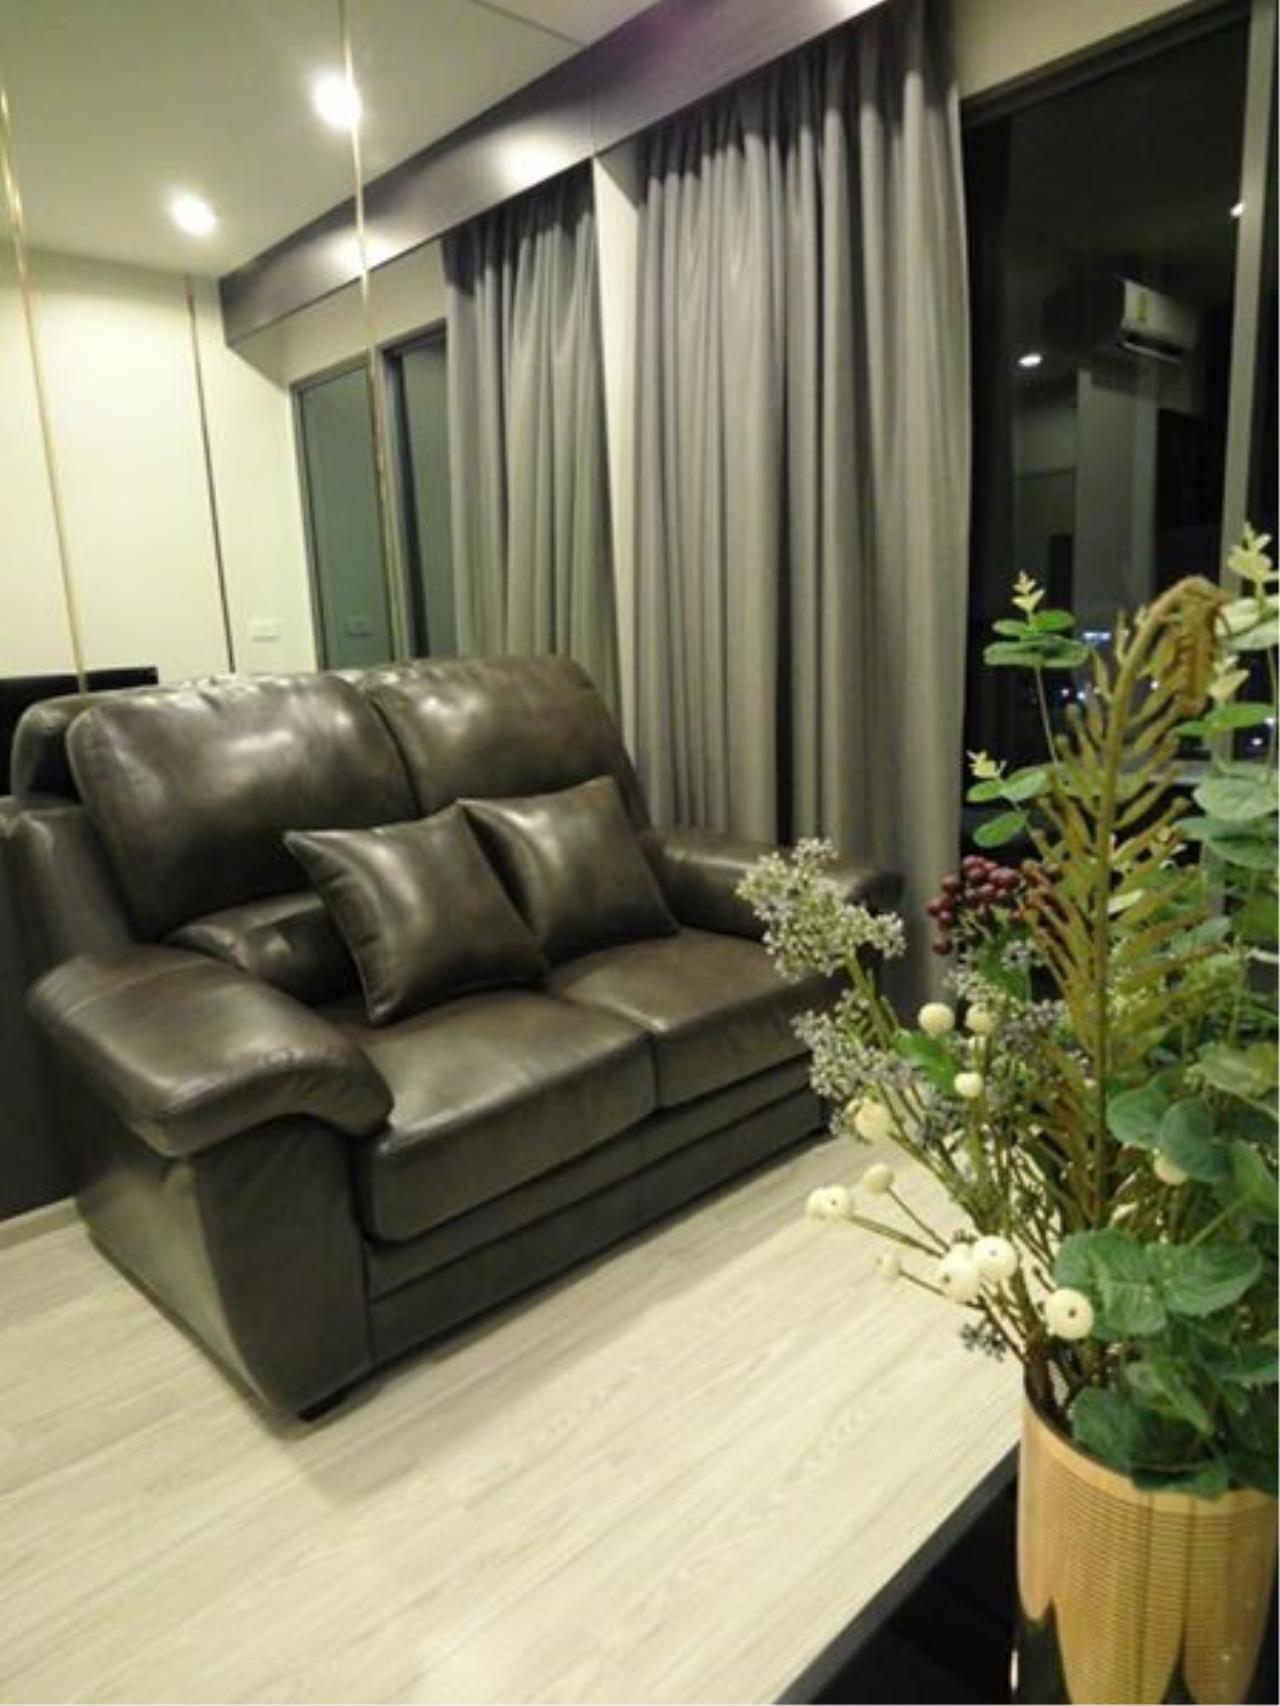 RE/MAX All Star Realty Agency's Ideo Mobi Eastgate, 1 bedroom, high floor for rent. Near BTS Bangna 4